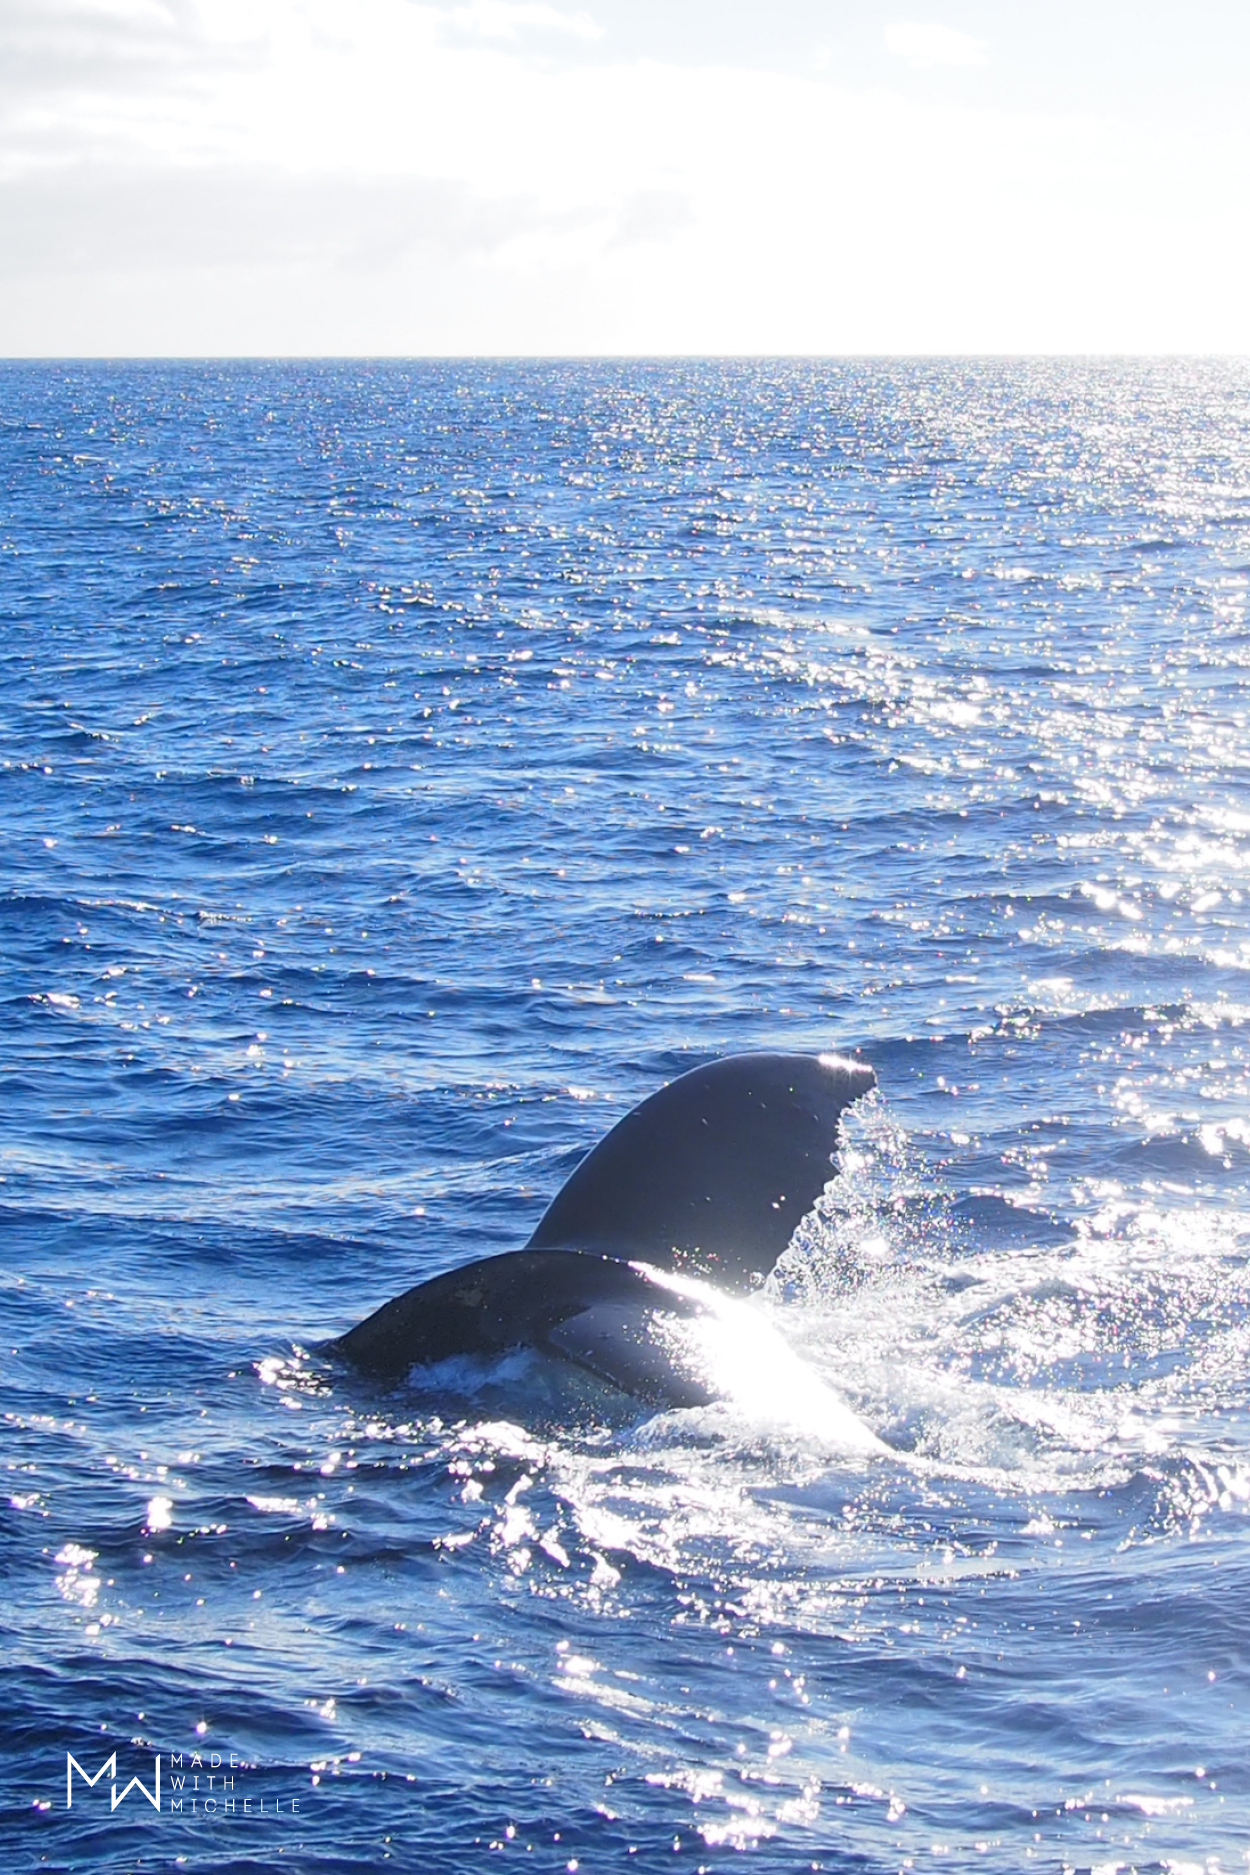 Things to do in Maui: Whale watching